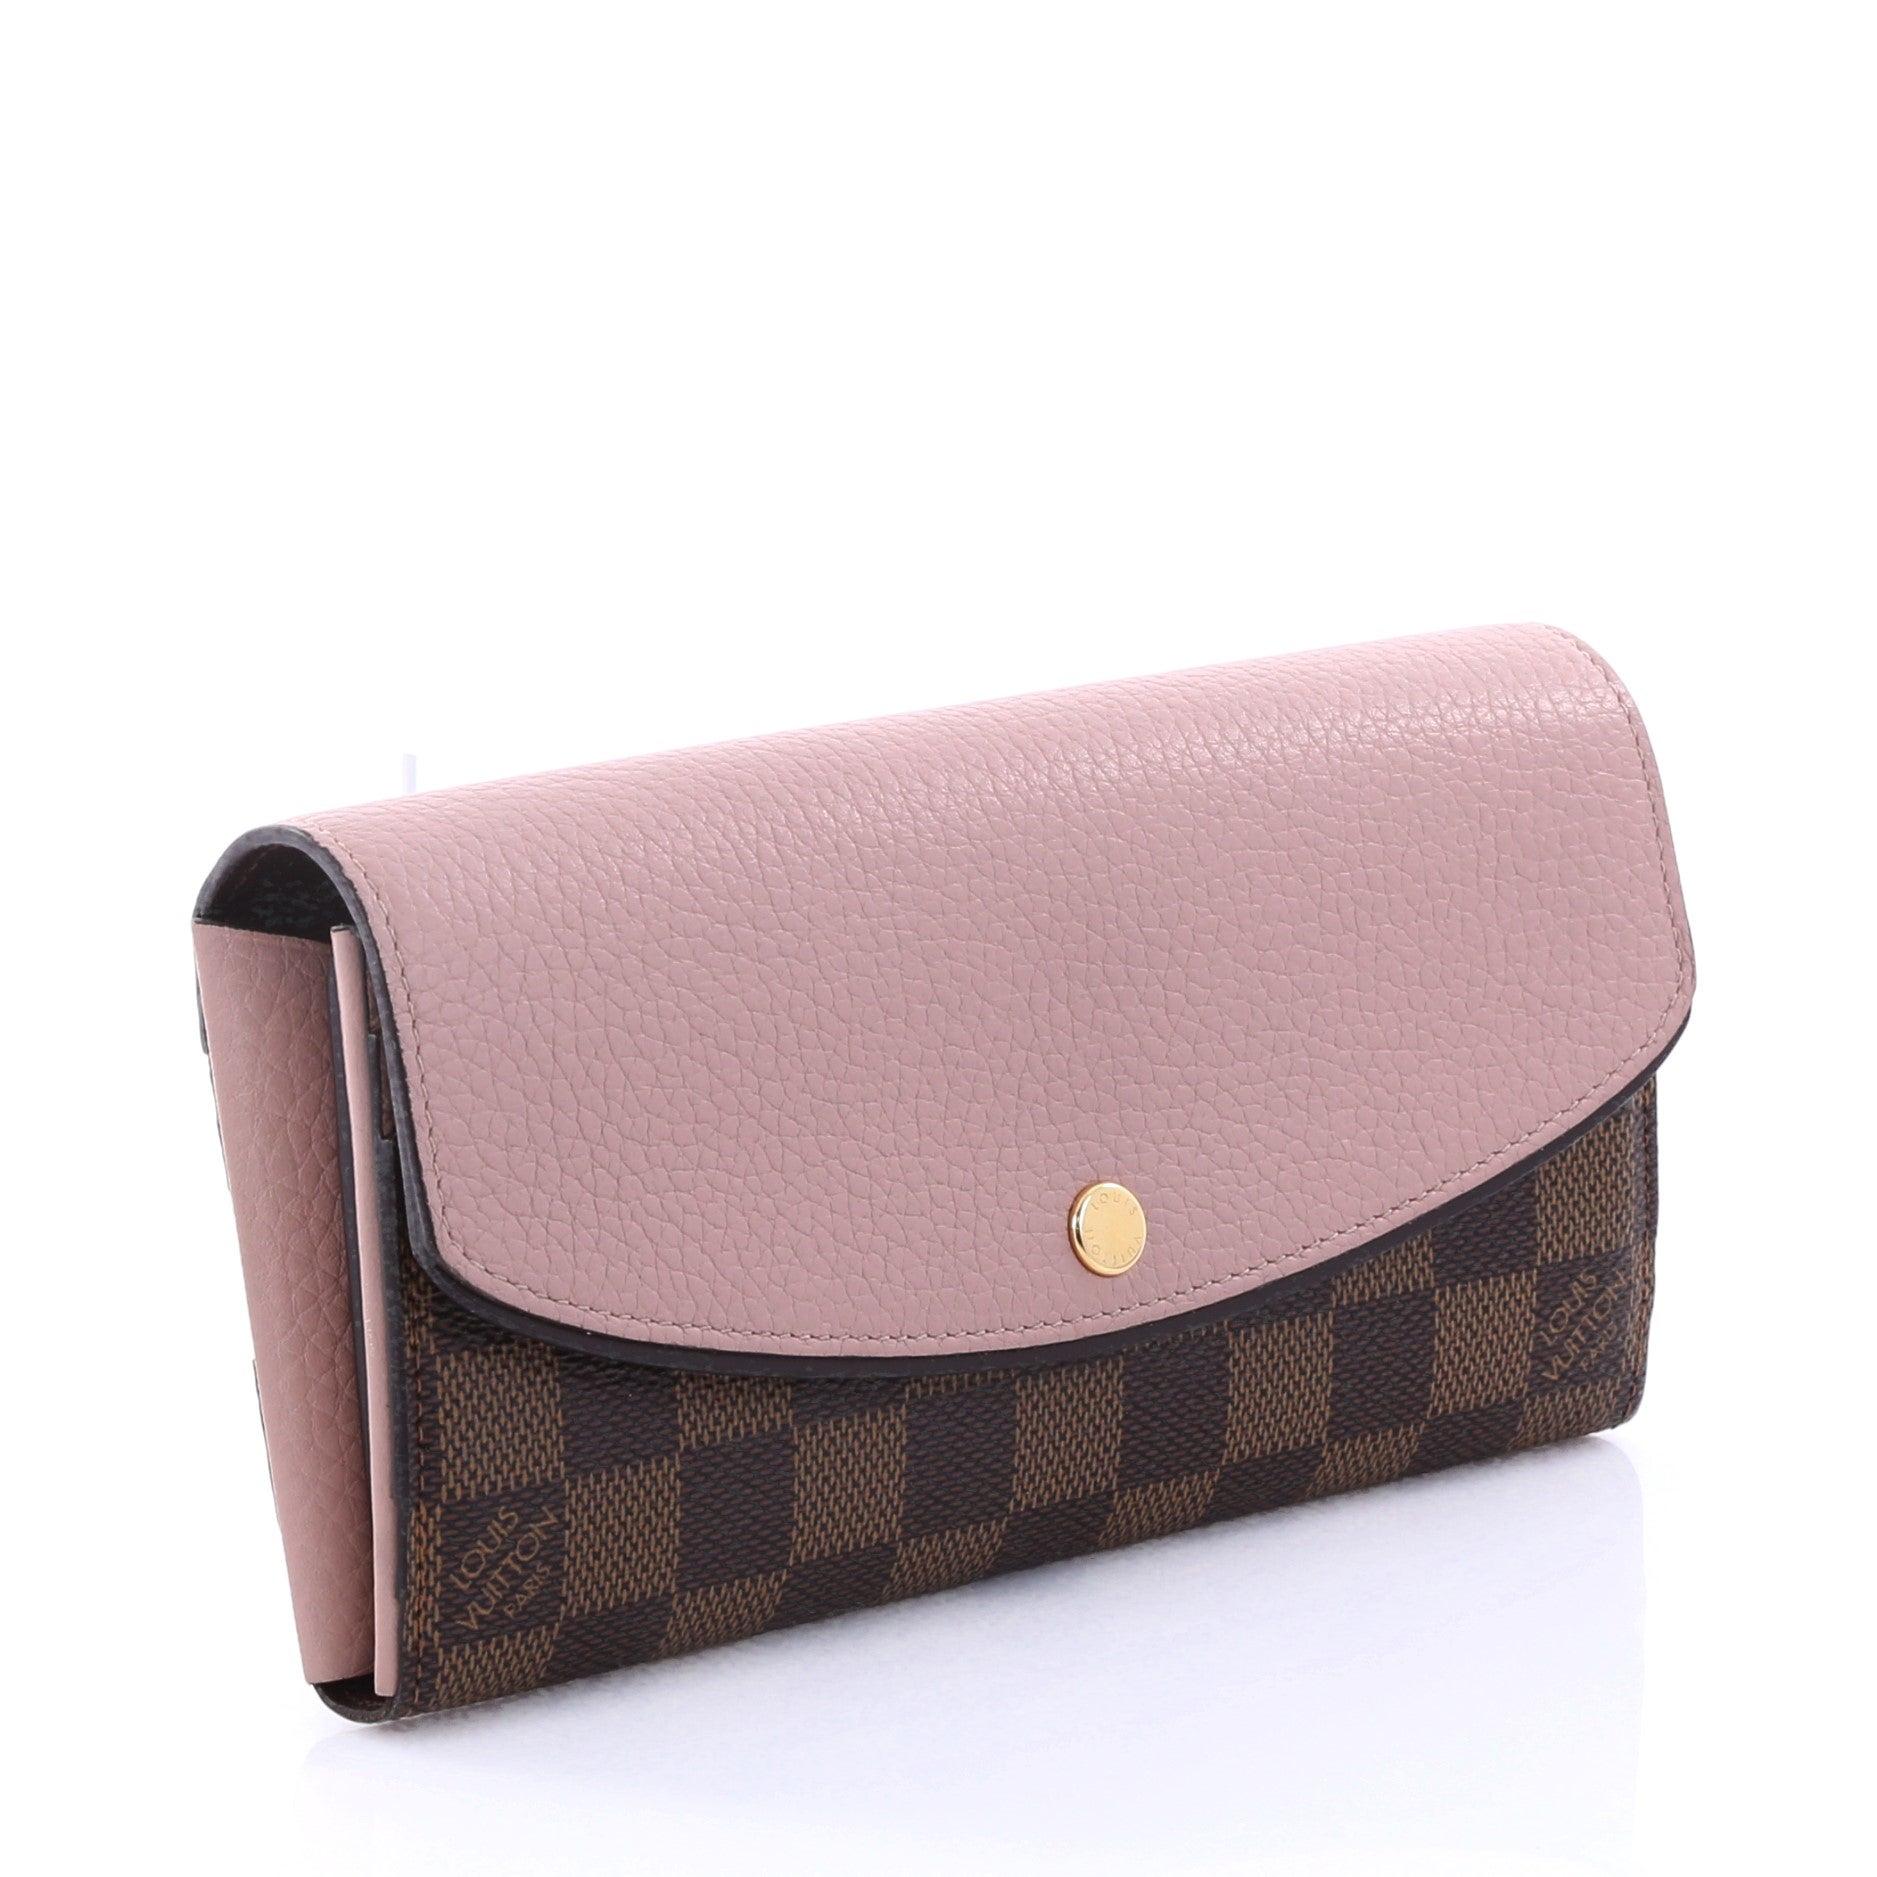 2d74f5febb60 Used Louis Vuitton Wallet - Best Photo Wallet Justiceforkenny.Org